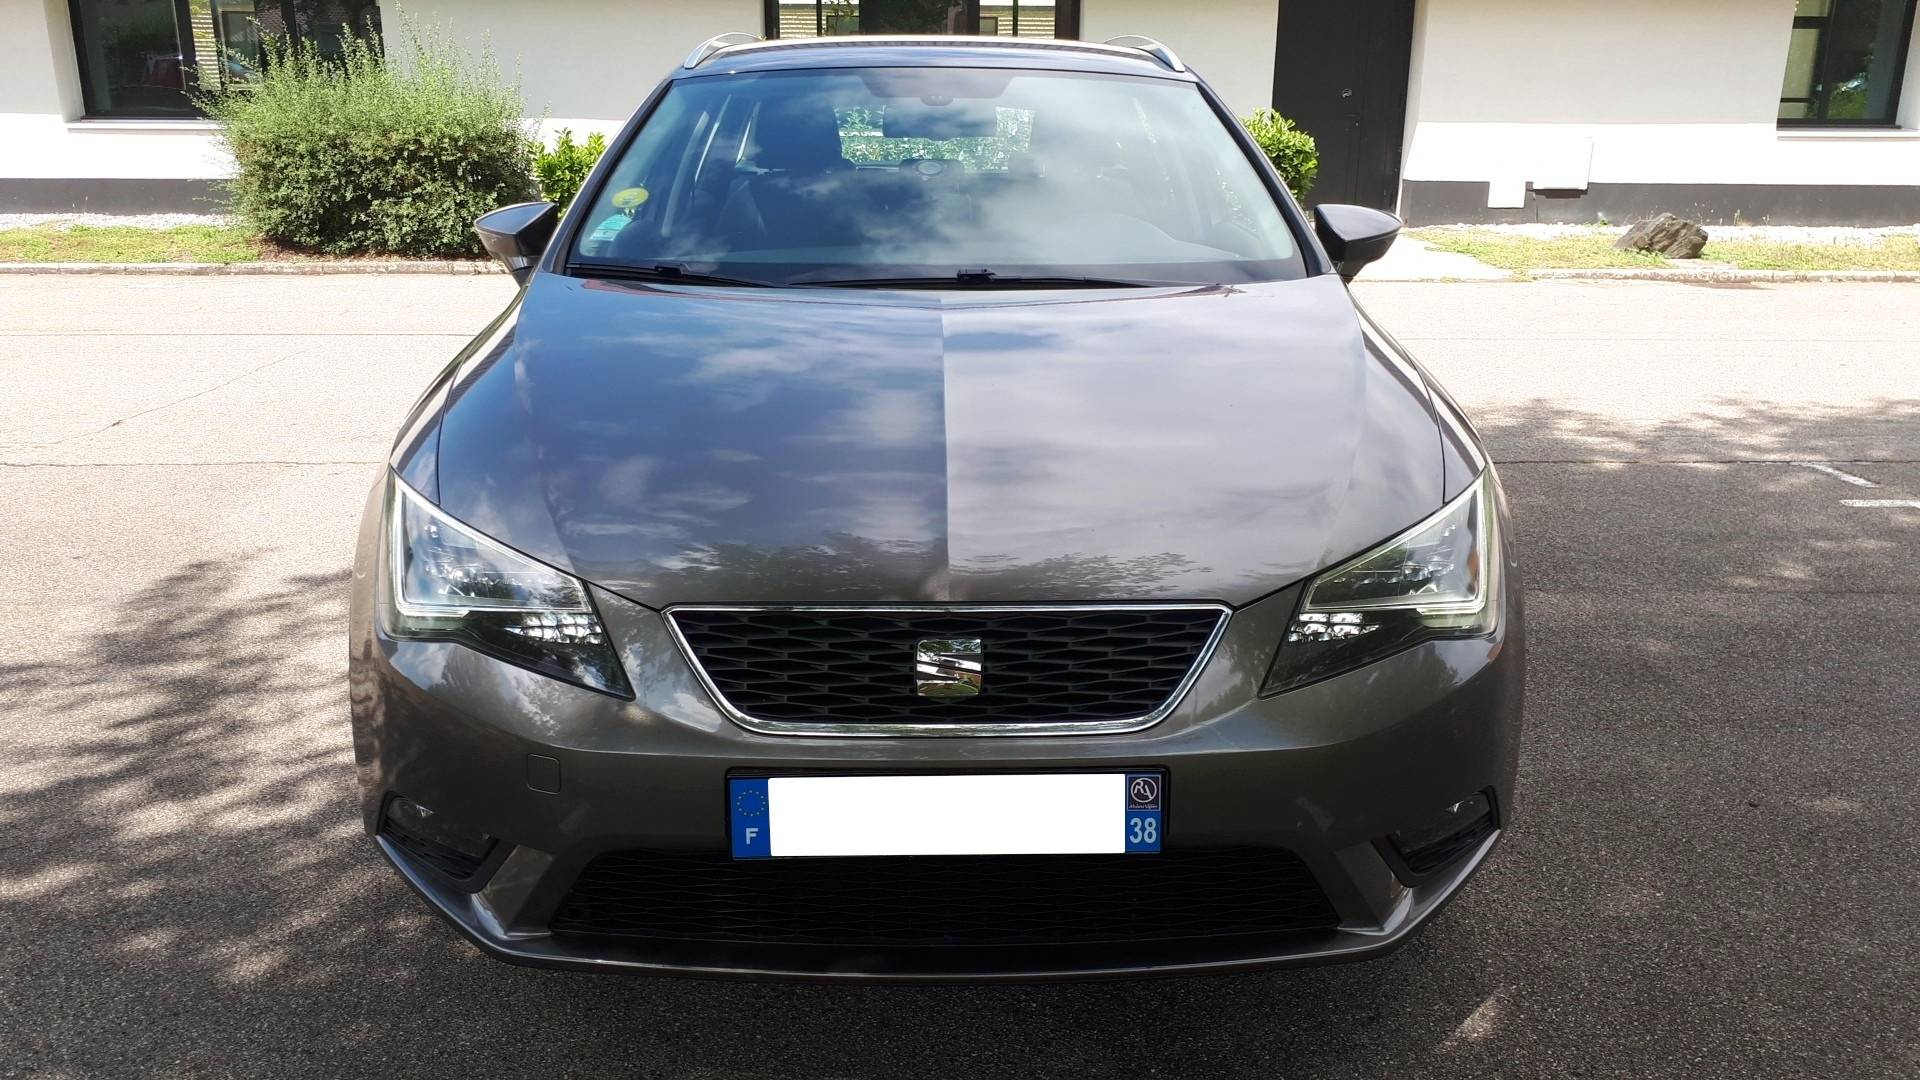 seat leon d 39 occasion st 1 6 tdi 105 style business start stop venissieux carizy. Black Bedroom Furniture Sets. Home Design Ideas